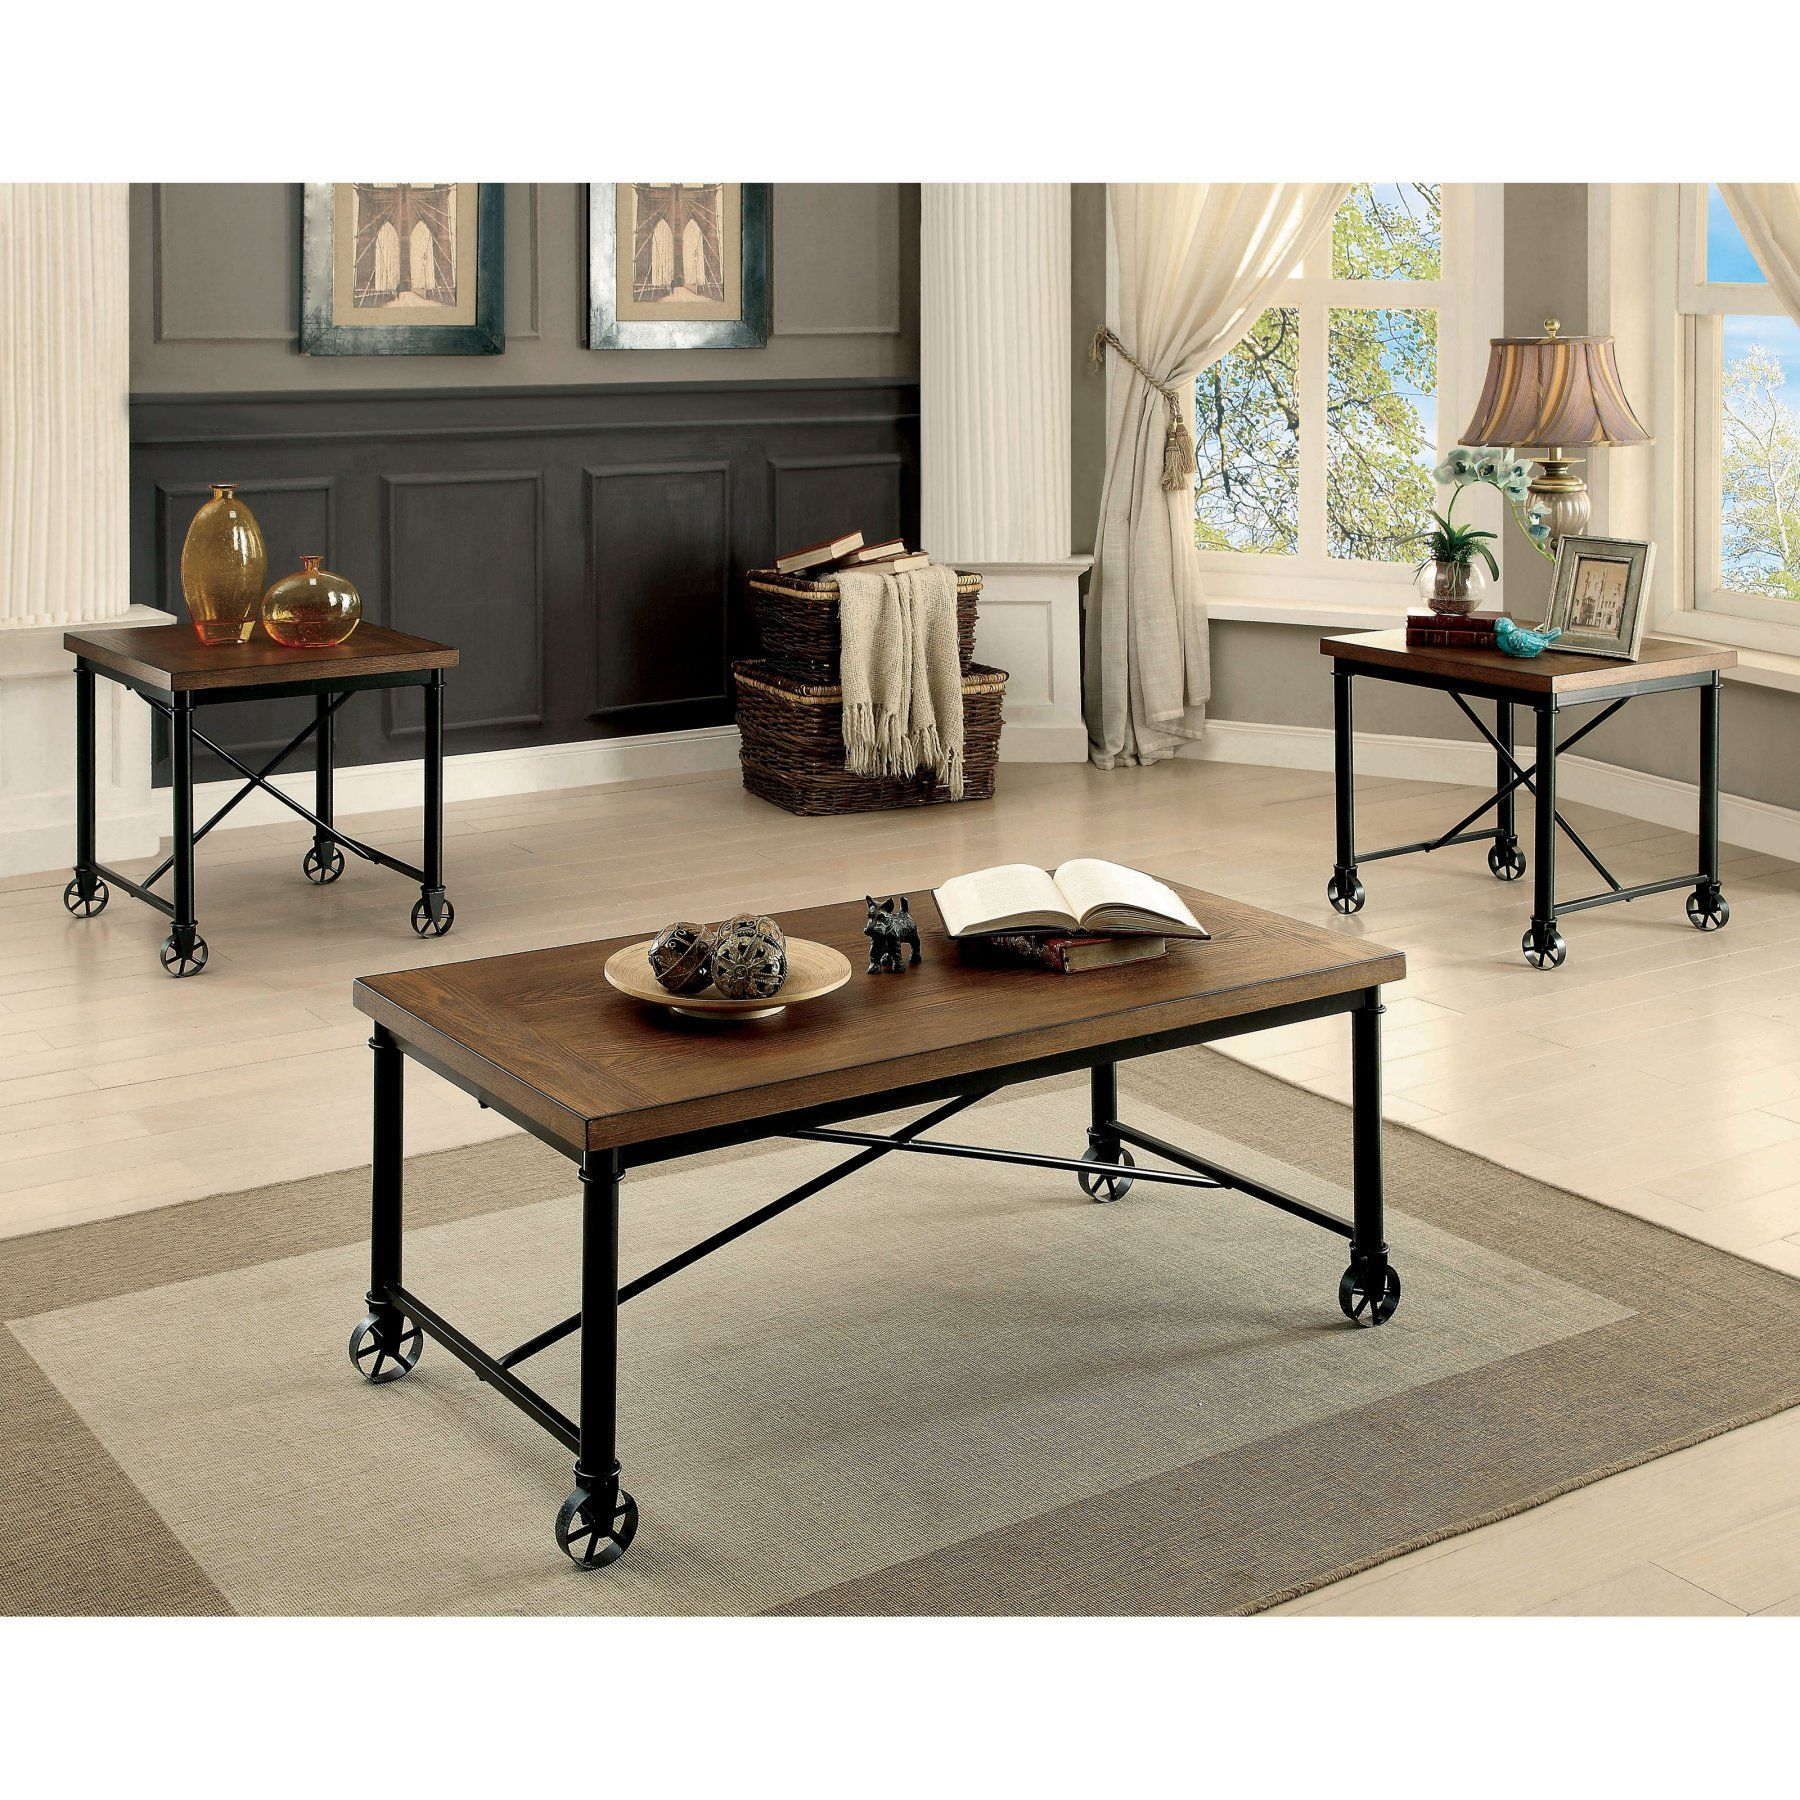 Furniture of America Hangrin 3 Piece Coffee Table Set IDF 4117